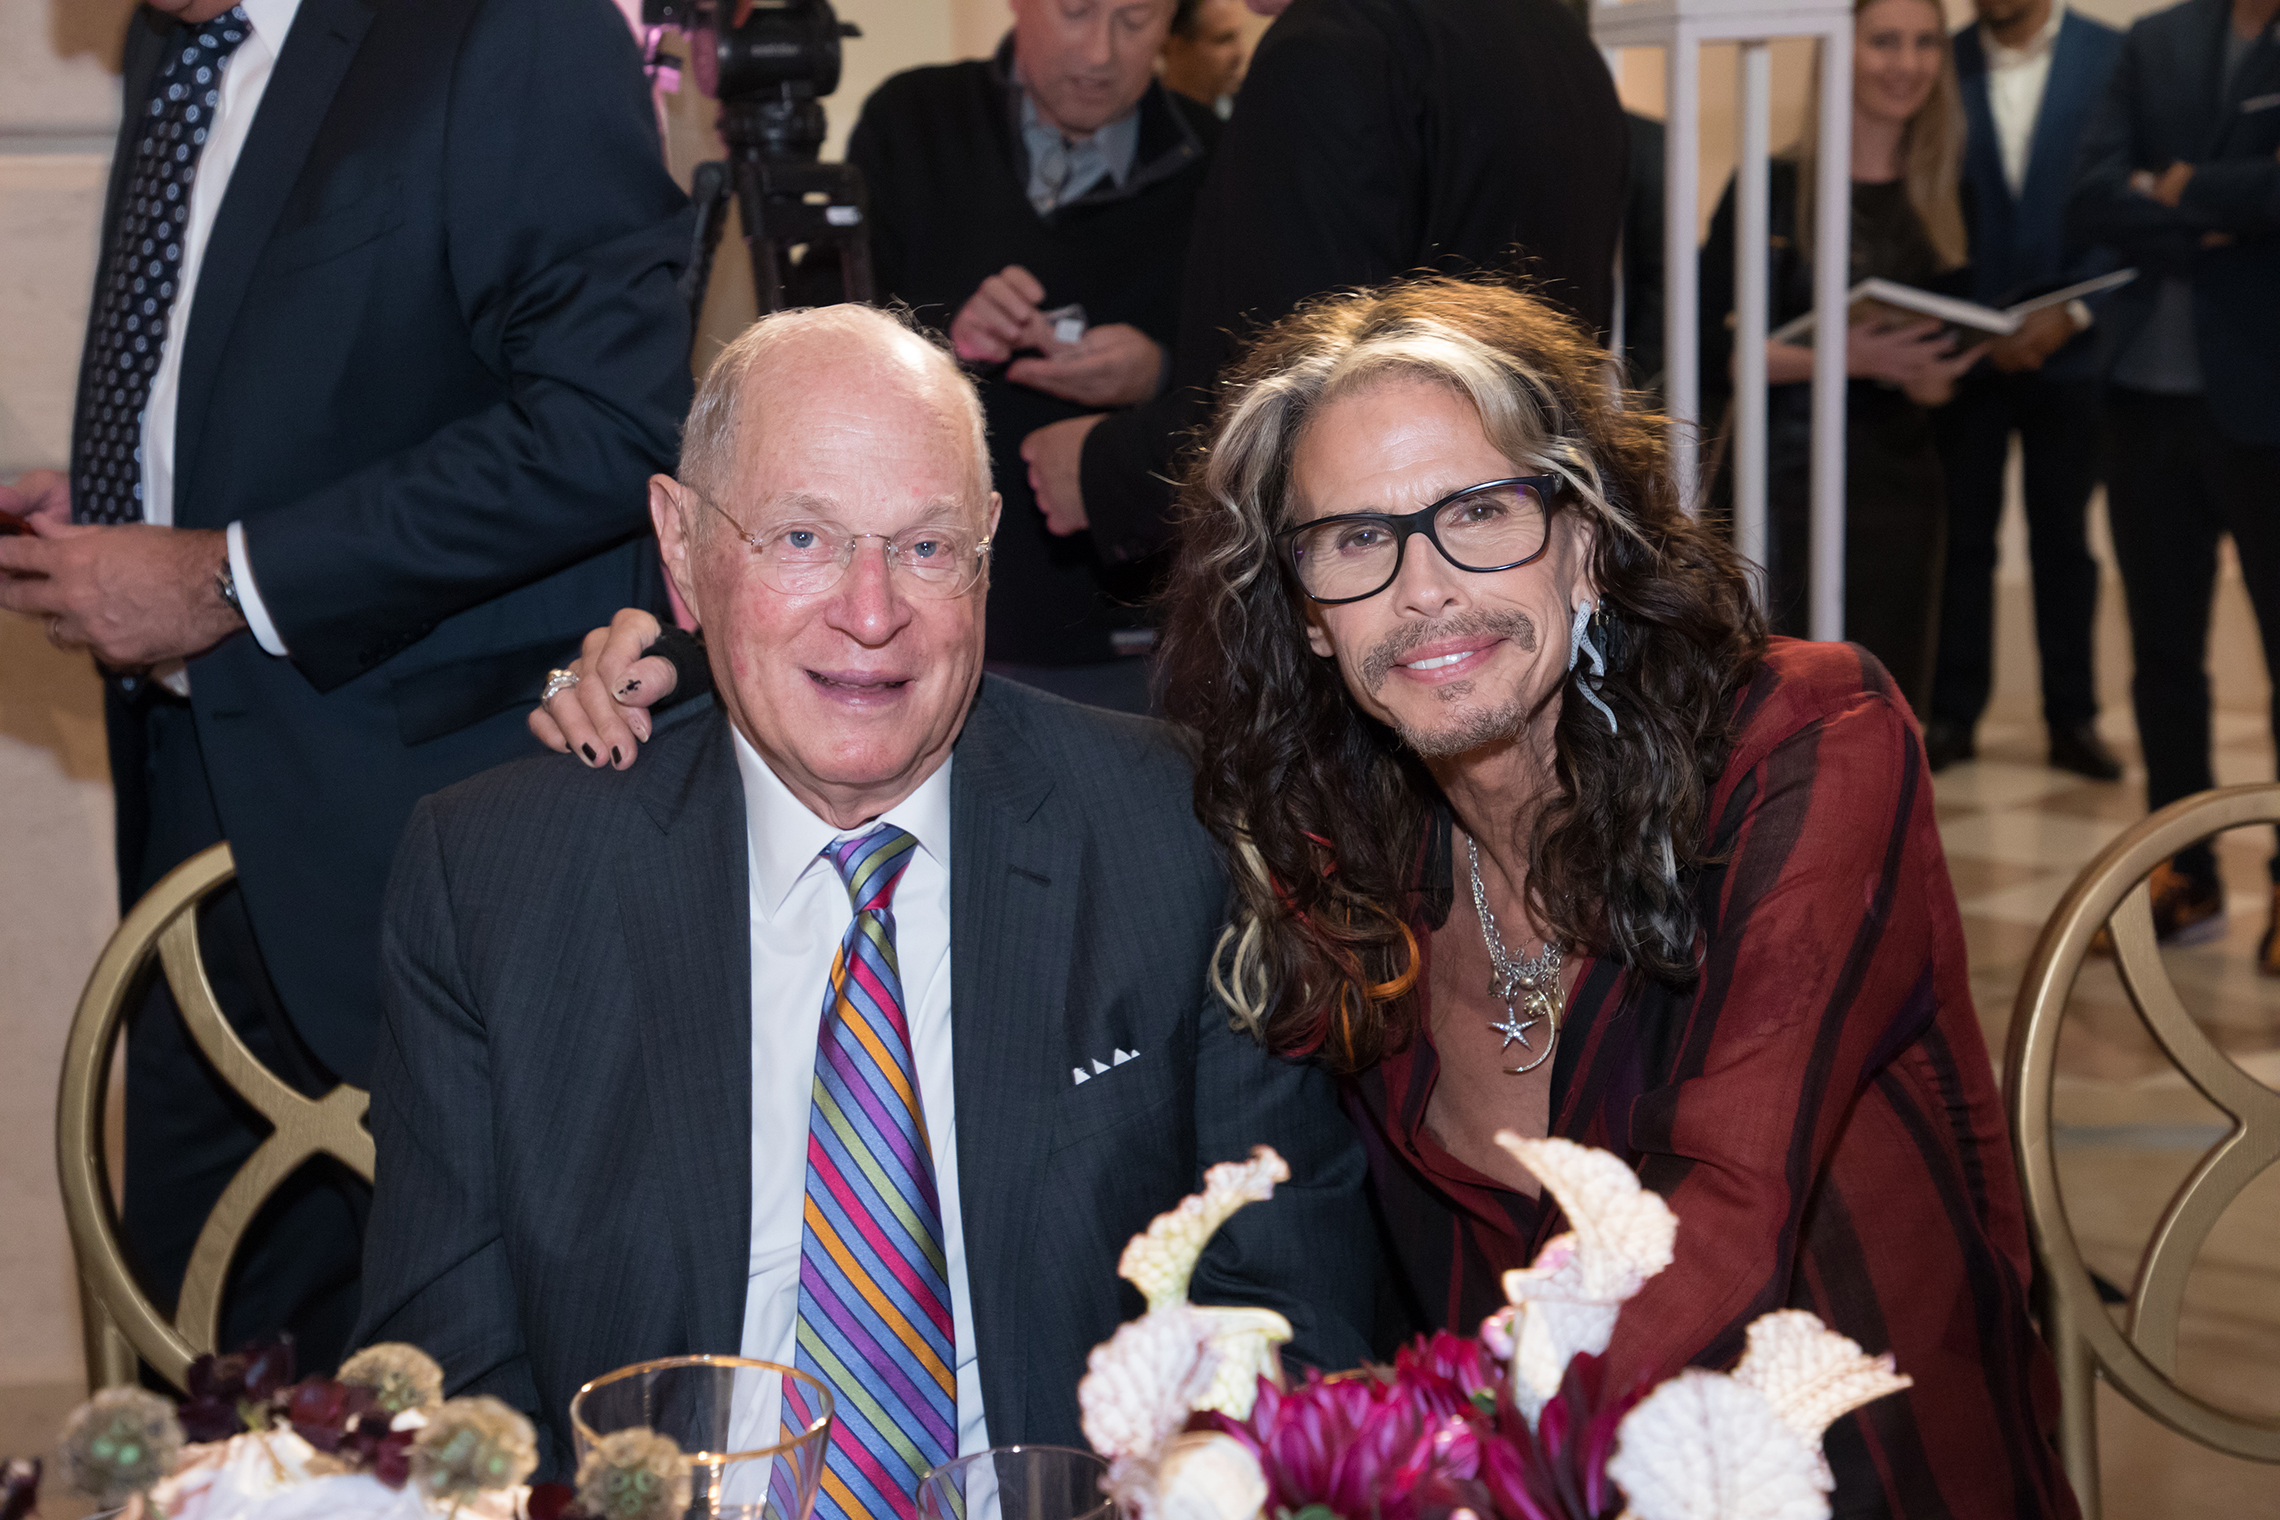 Some of the guests of honor at the Summit included: Anthony M. Kennedy, retired Justice of the United States Supreme Court, and Steven Tyler, Rock and Roll Hall of Fame singer and songwriter. Photo credit: American Academy of Achievement